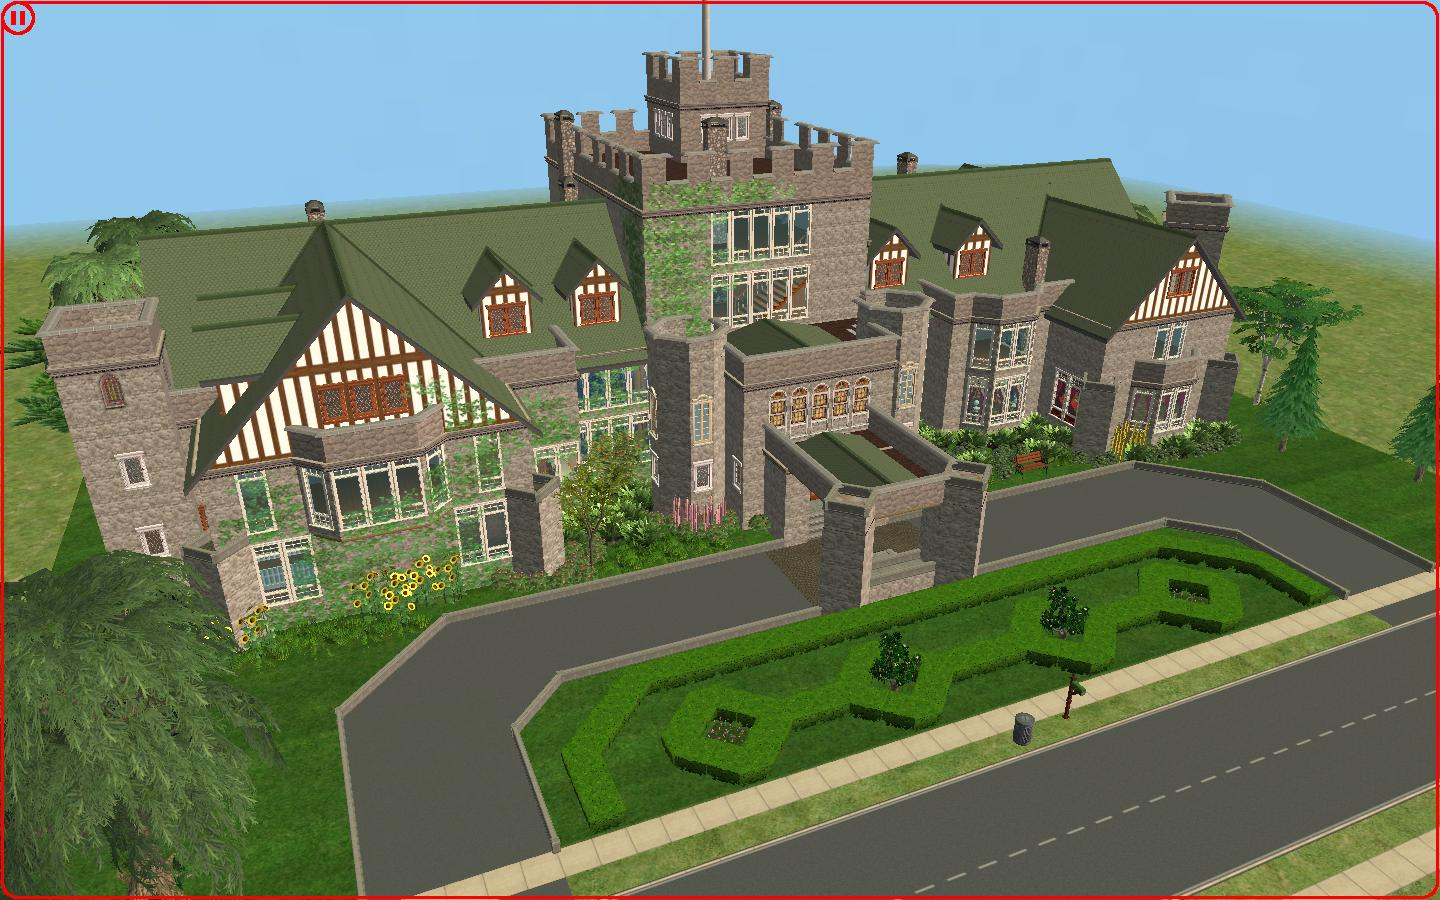 The Sims 3 Castle Floor Plans